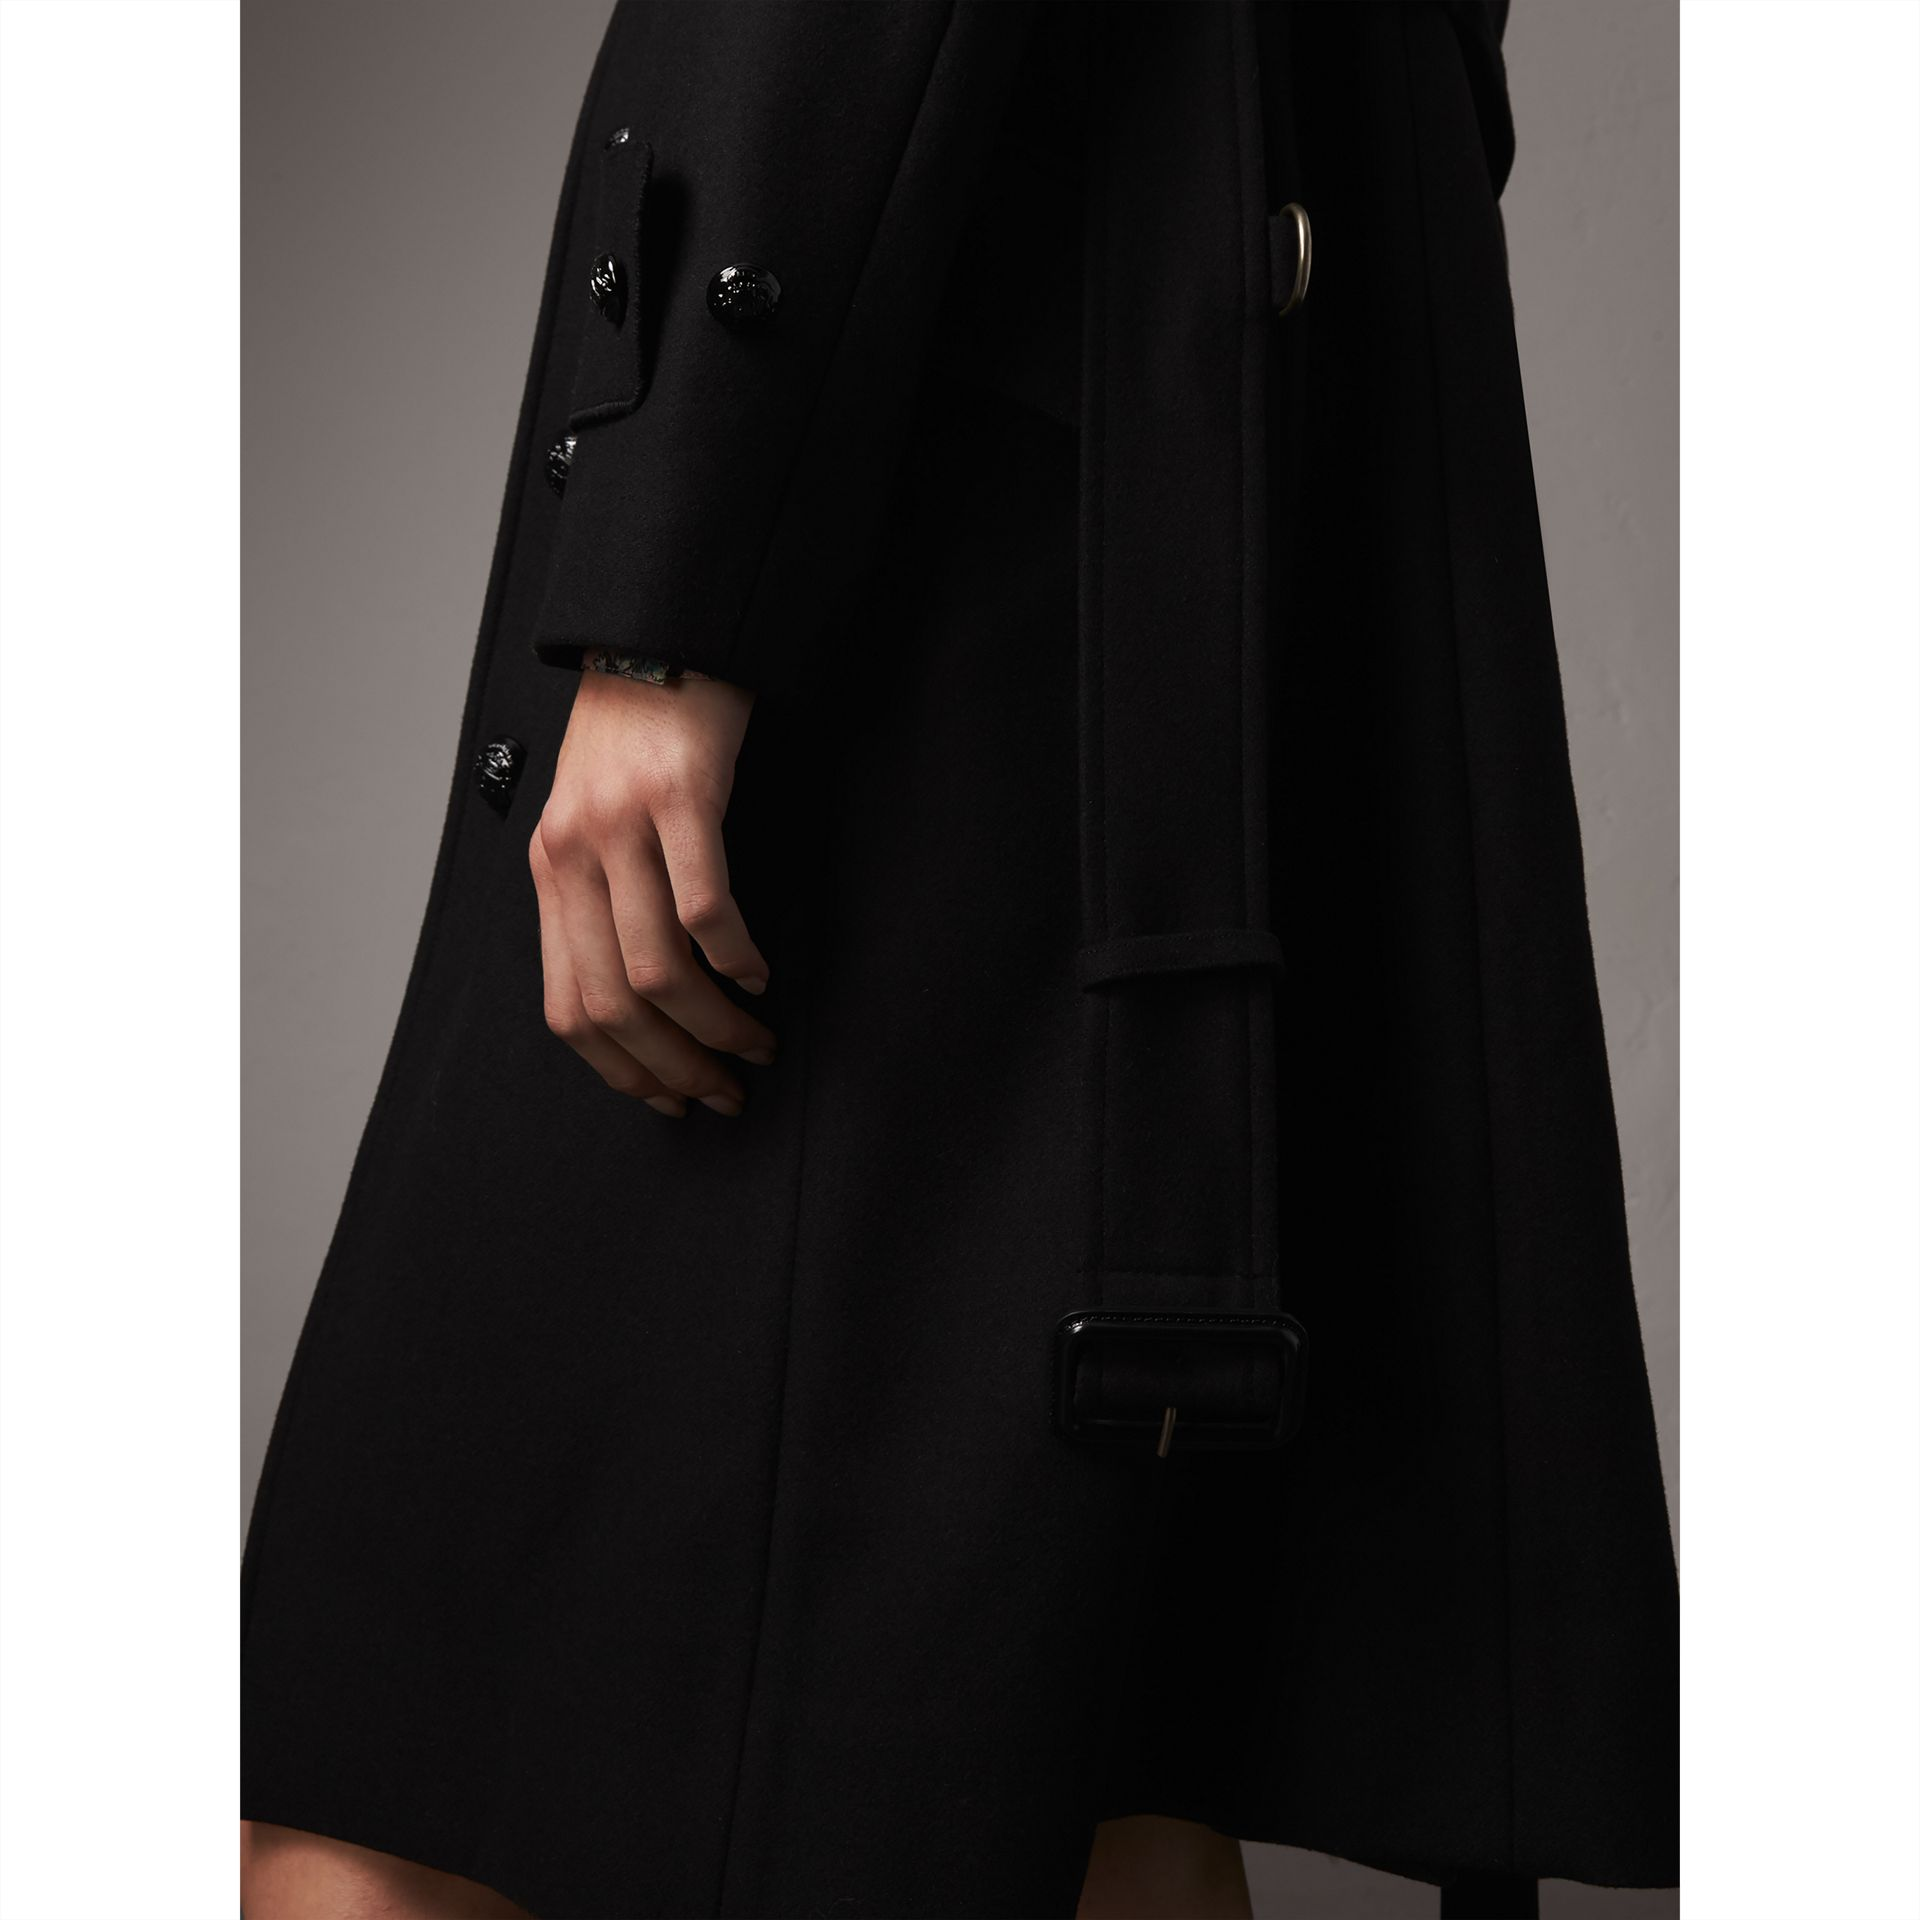 Hooded Wool Blend Coat with Detachable Fur Trim in Black - Women | Burberry Singapore - gallery image 2